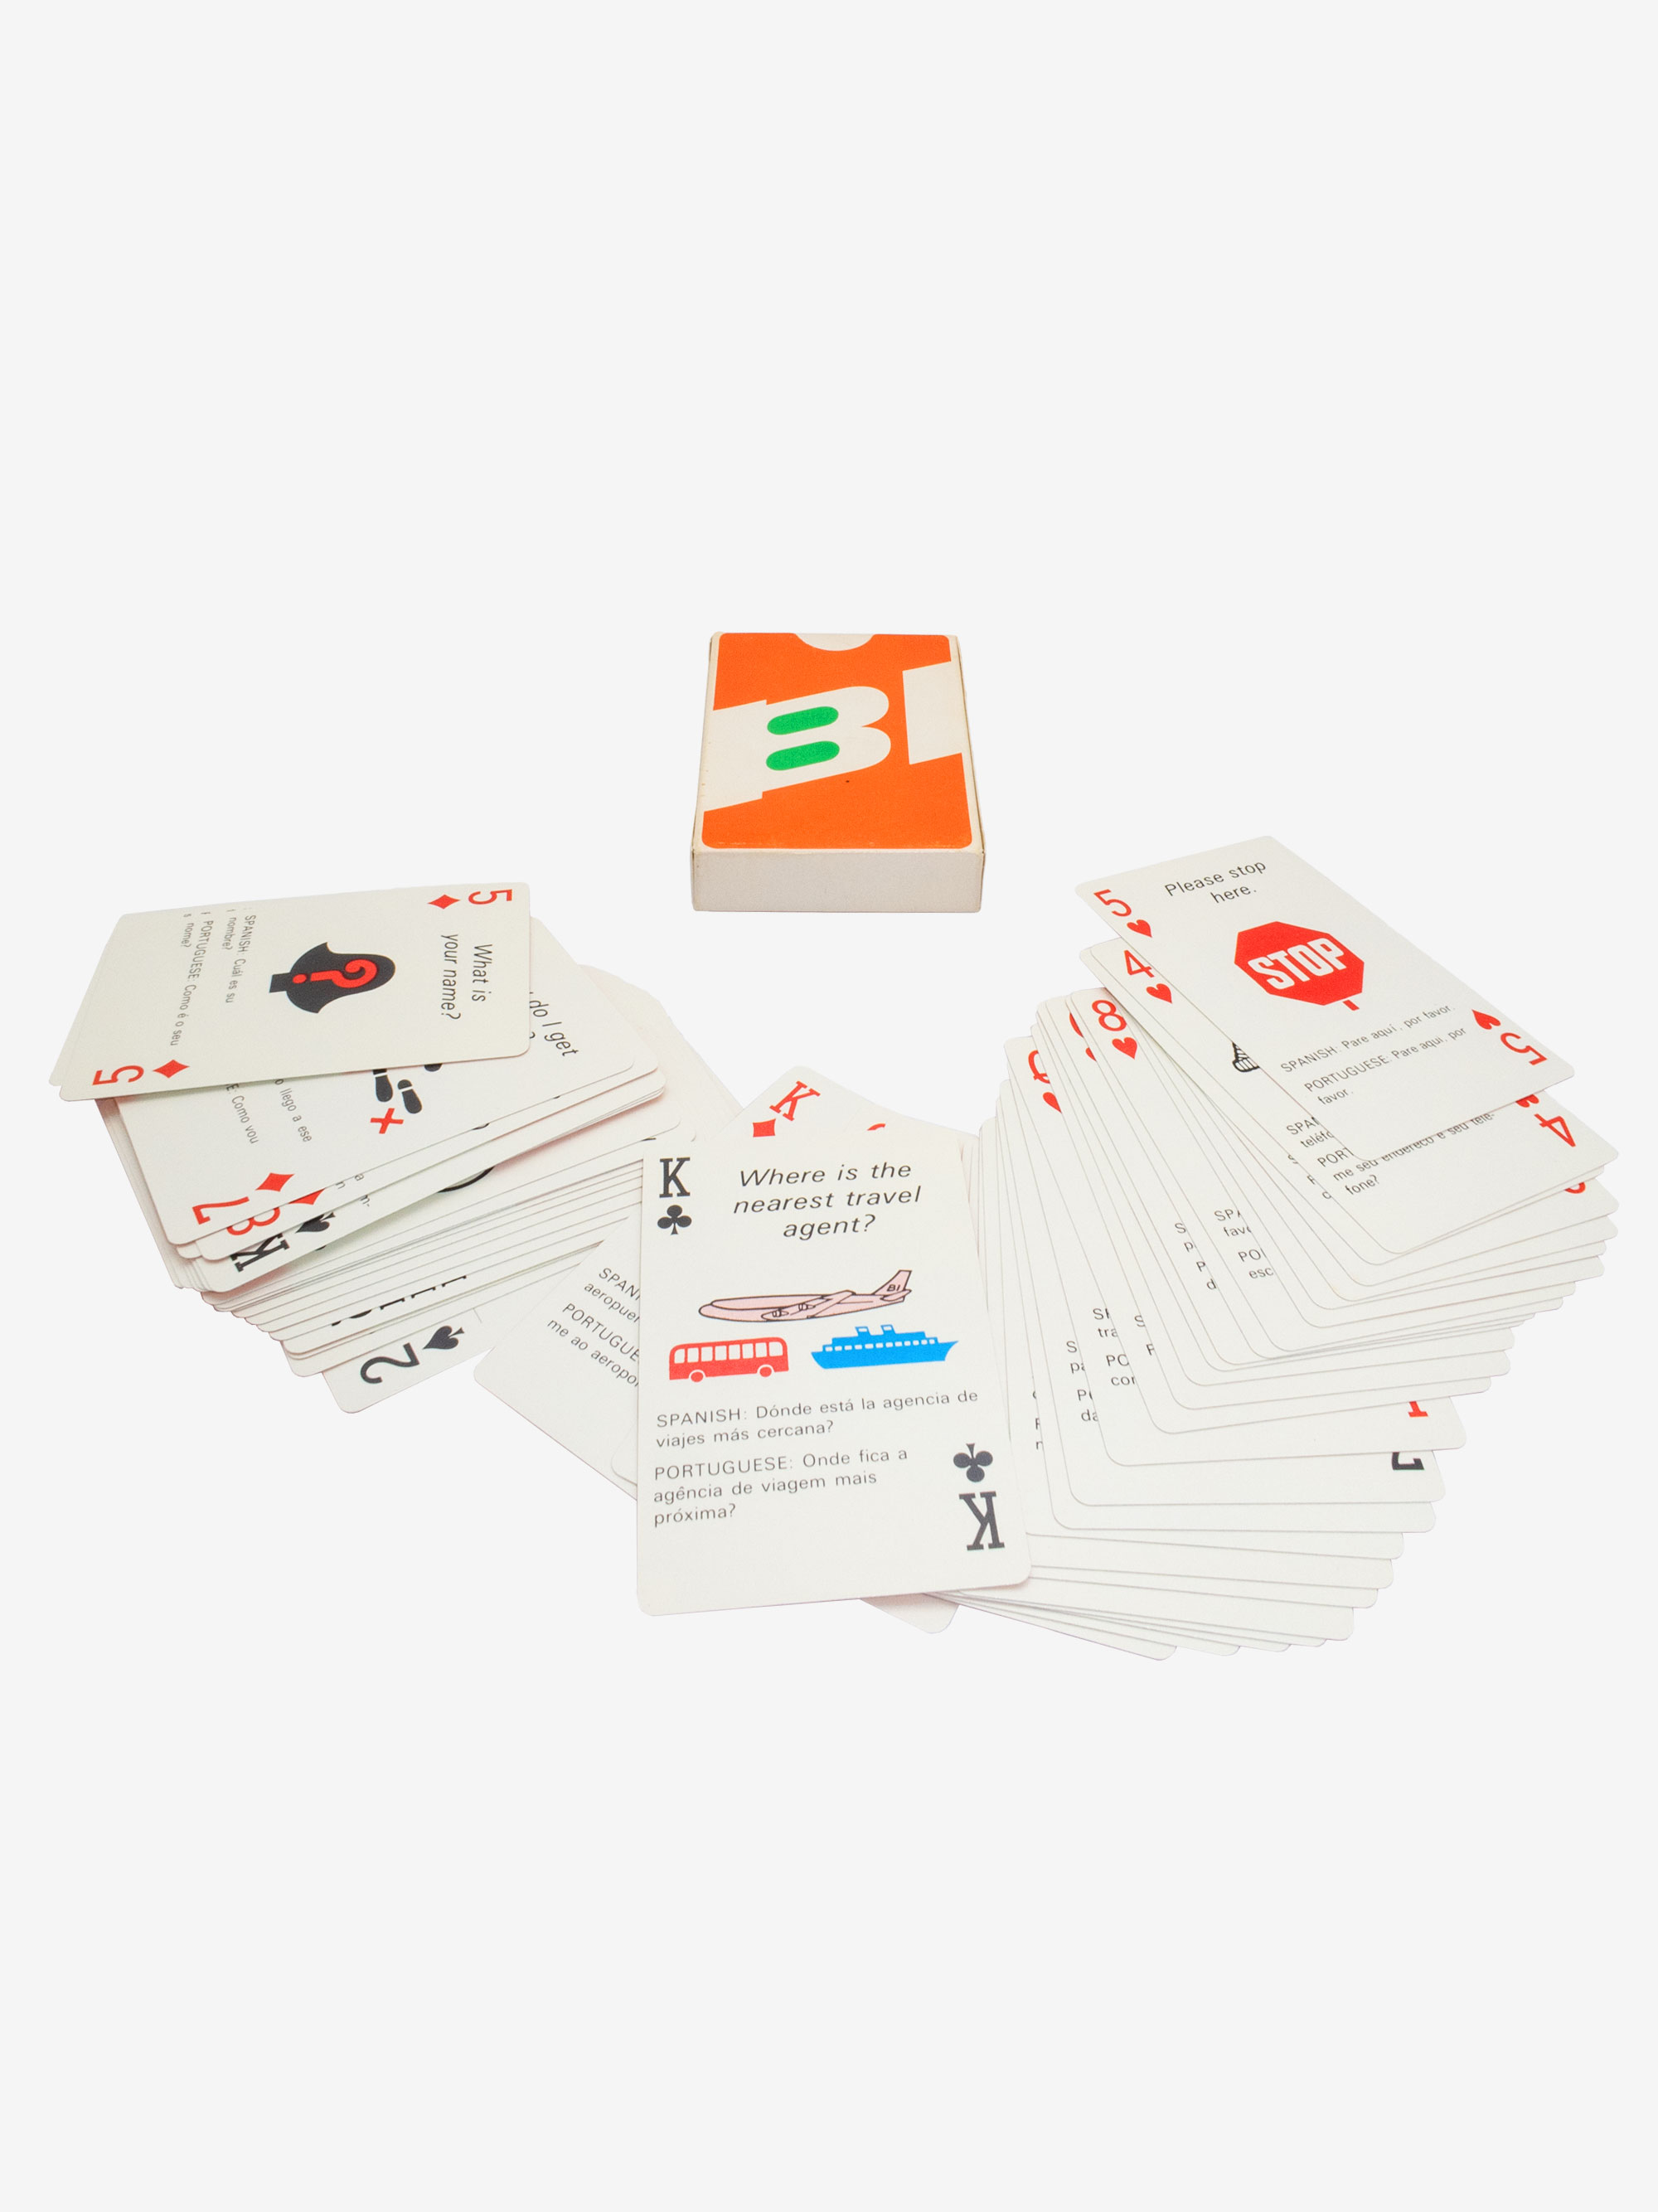 Playing Card by Braniff Airway